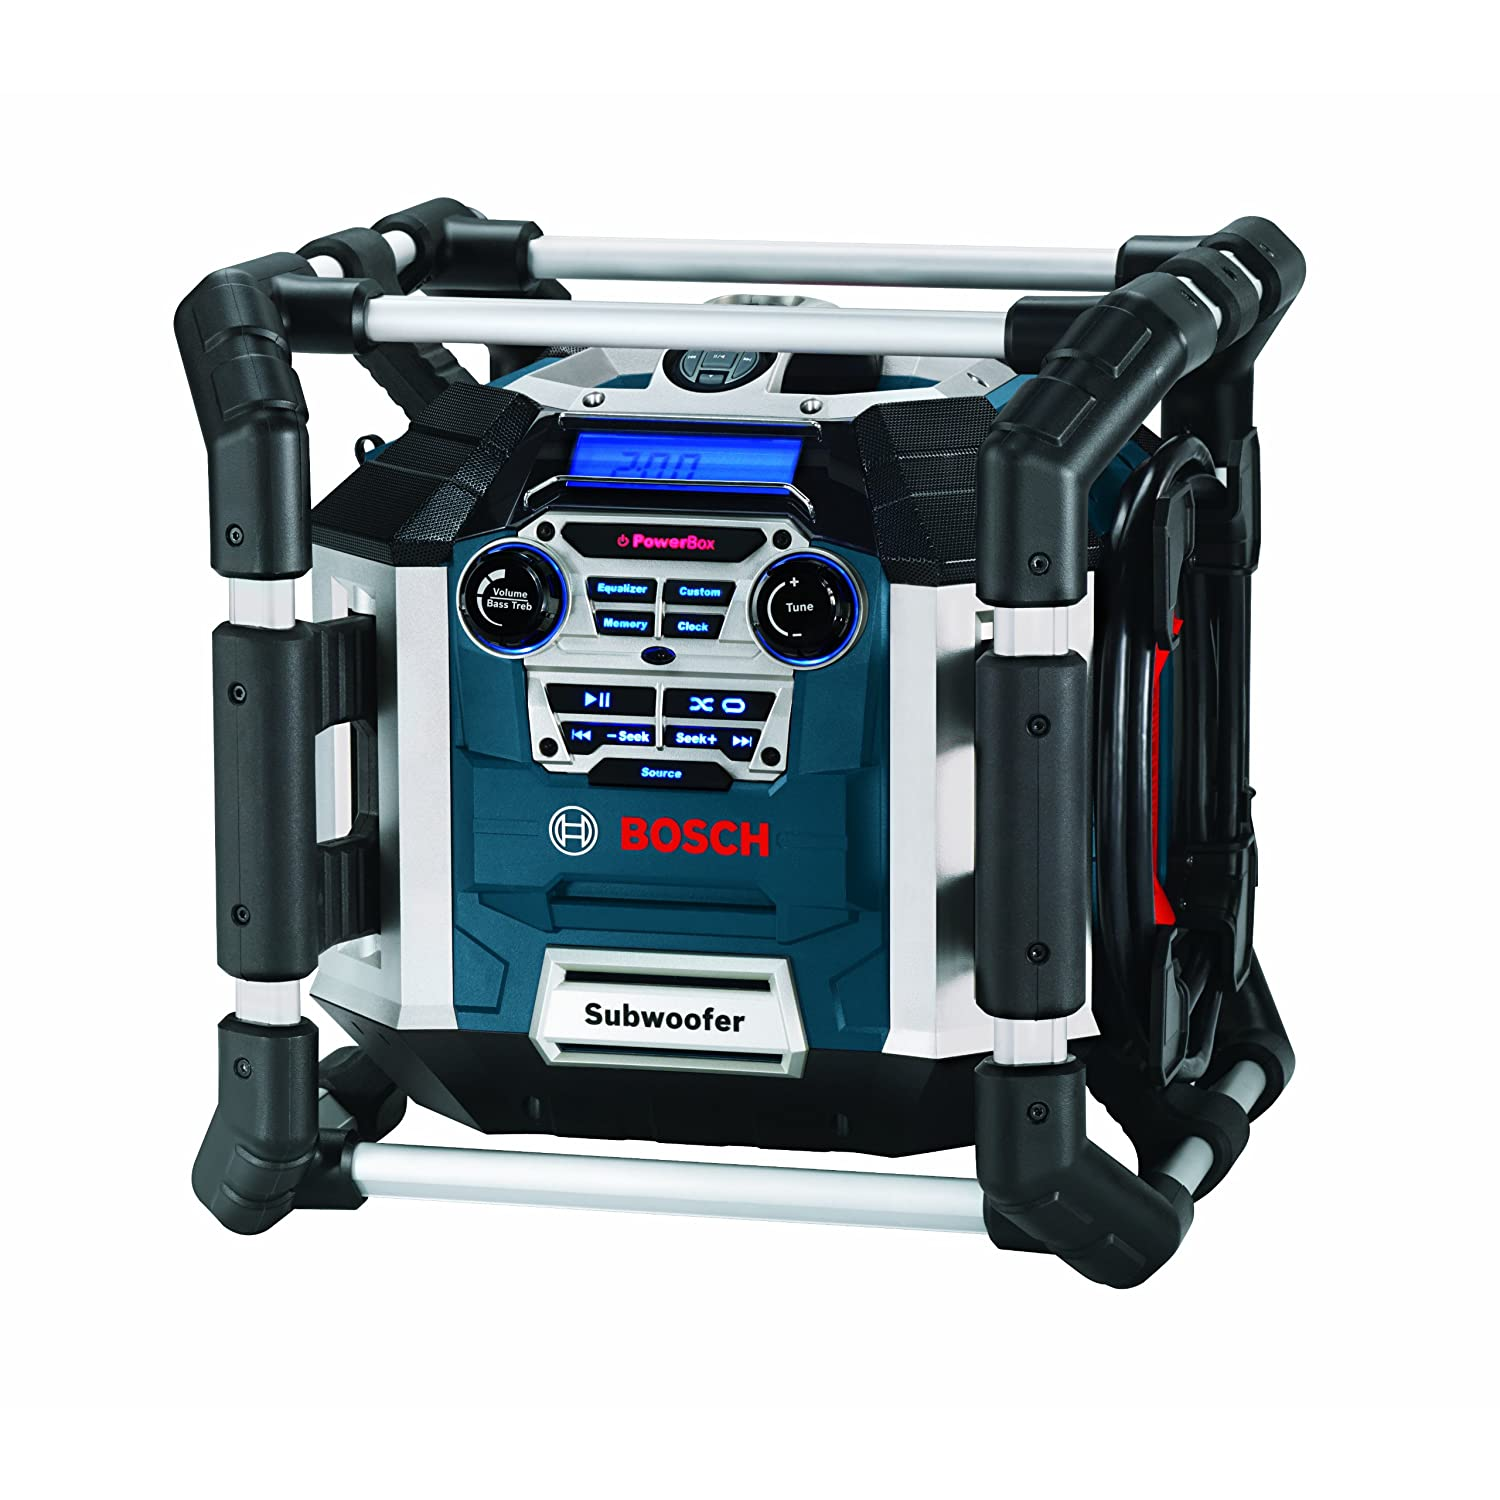 Bosch PB360D Jobsite Radio Review